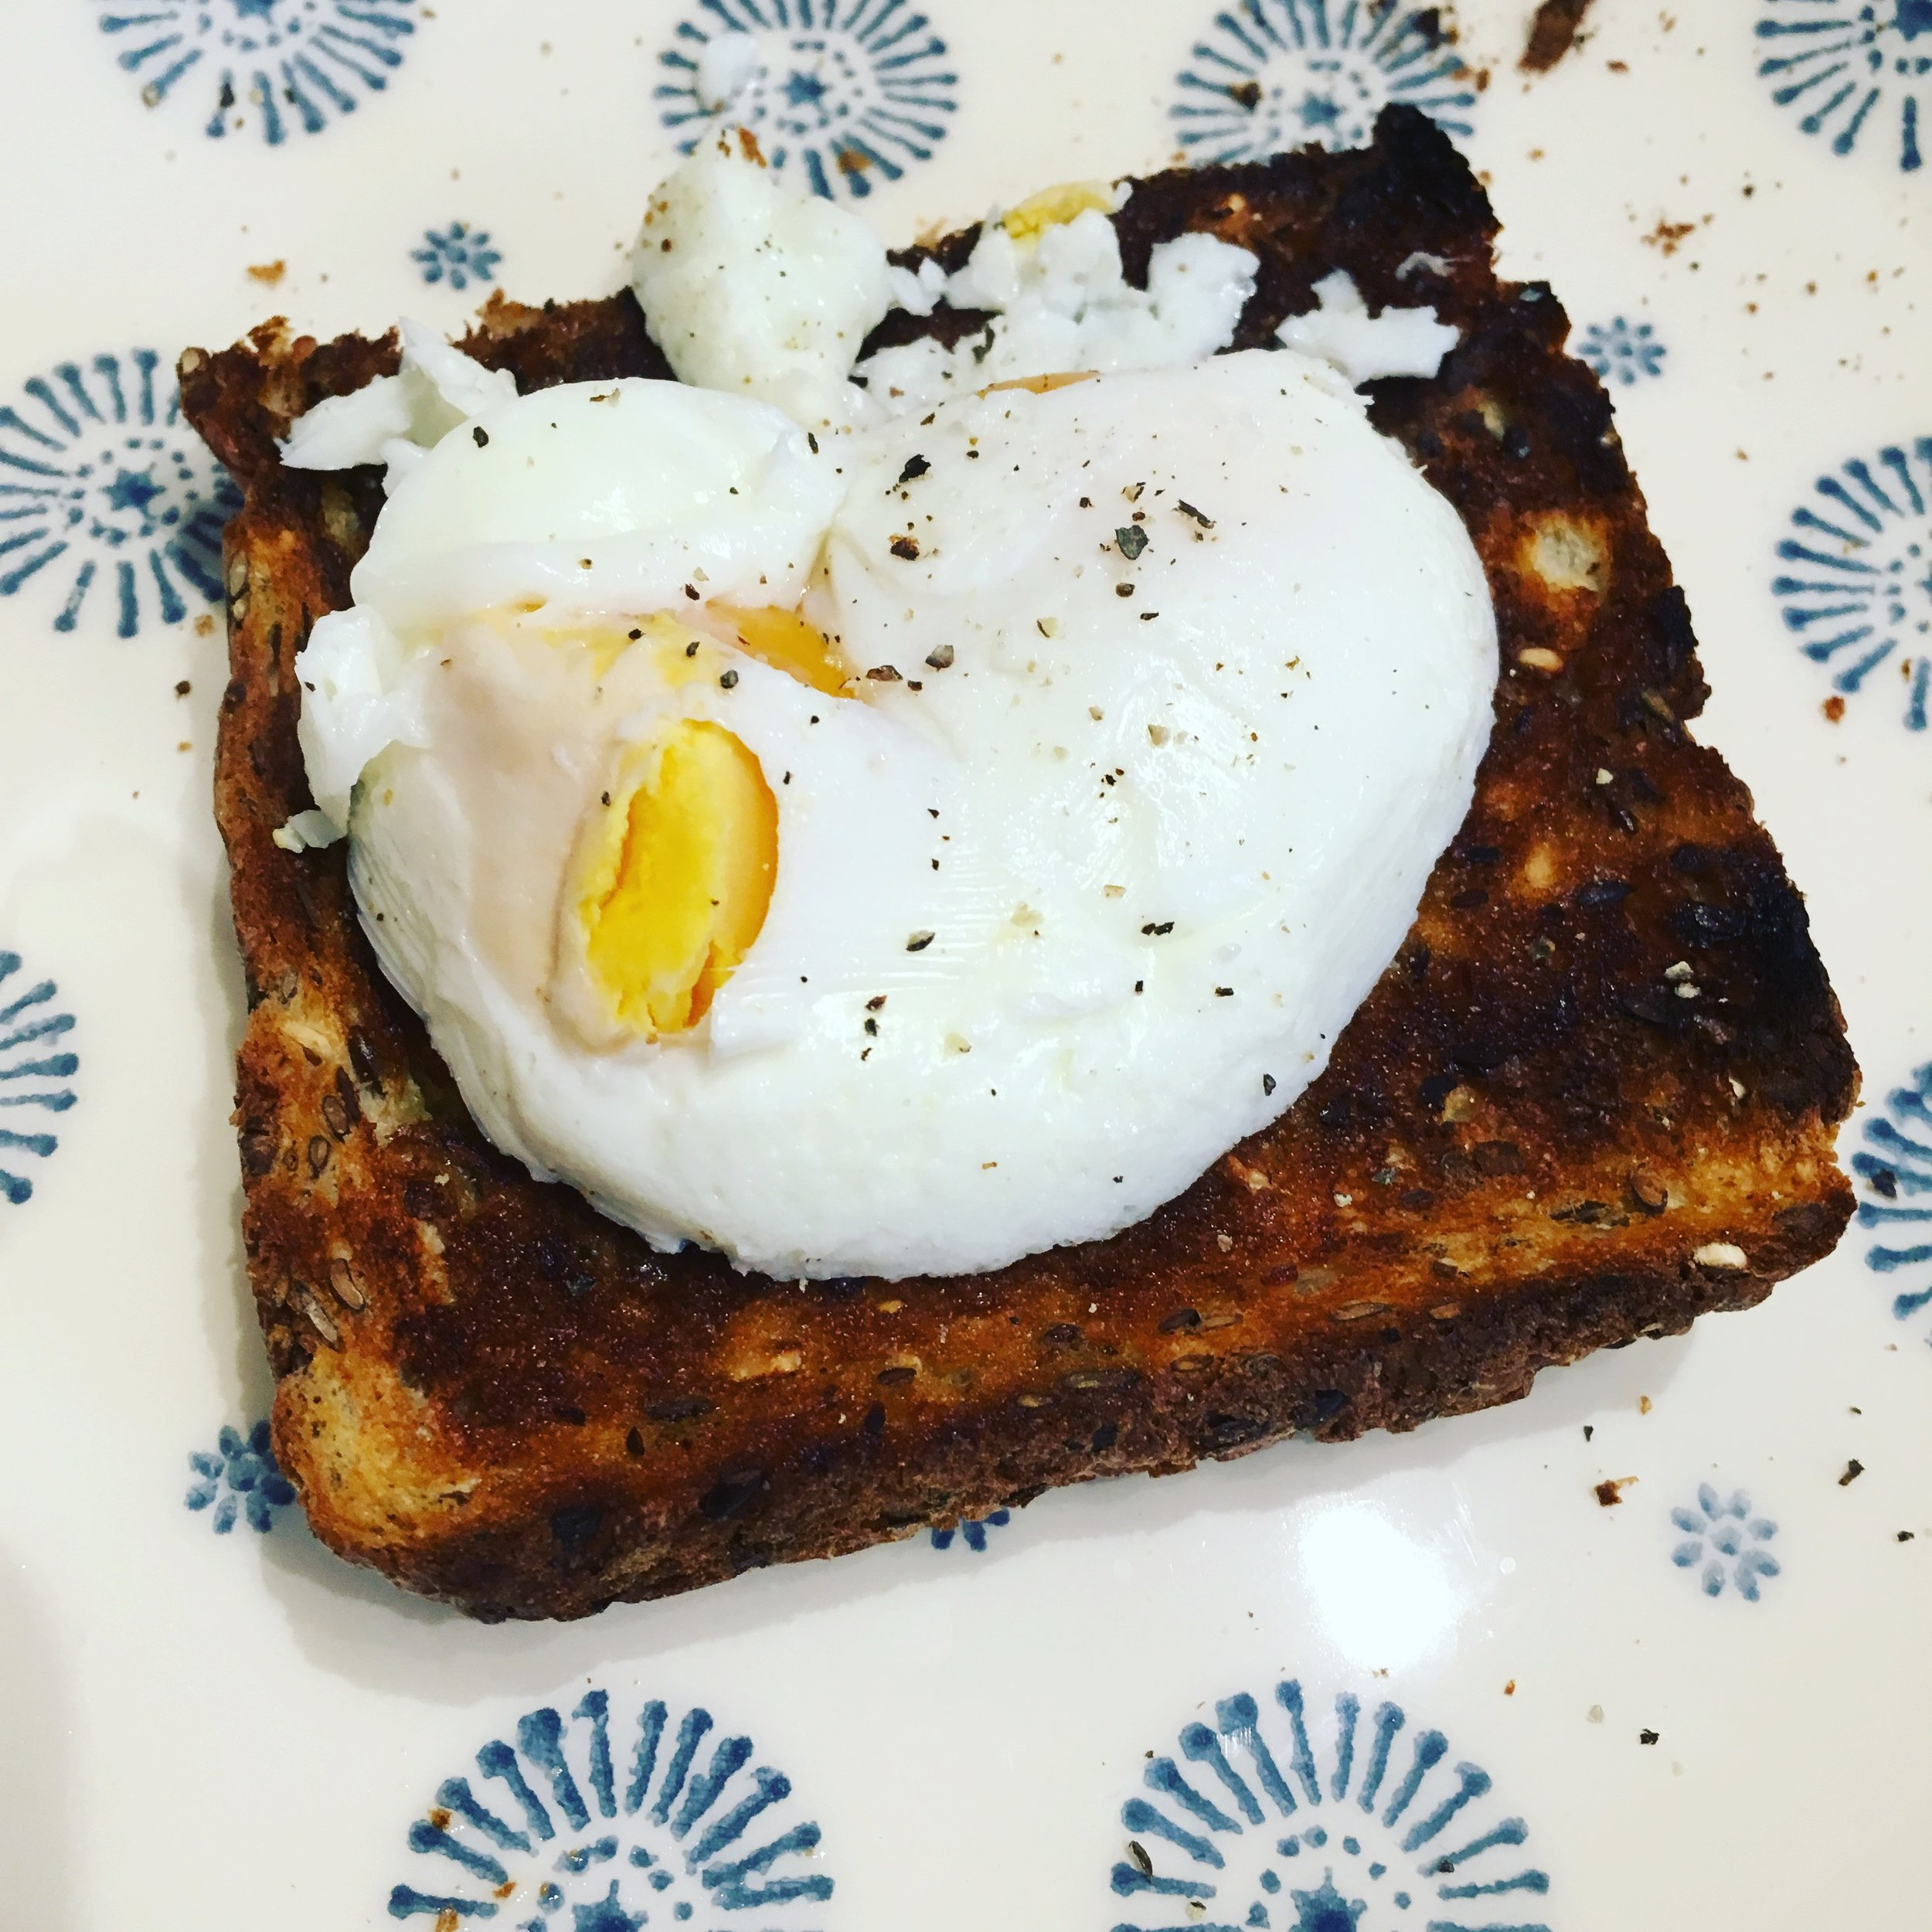 High in protein and low in calories, eggs are a great way to start the day!